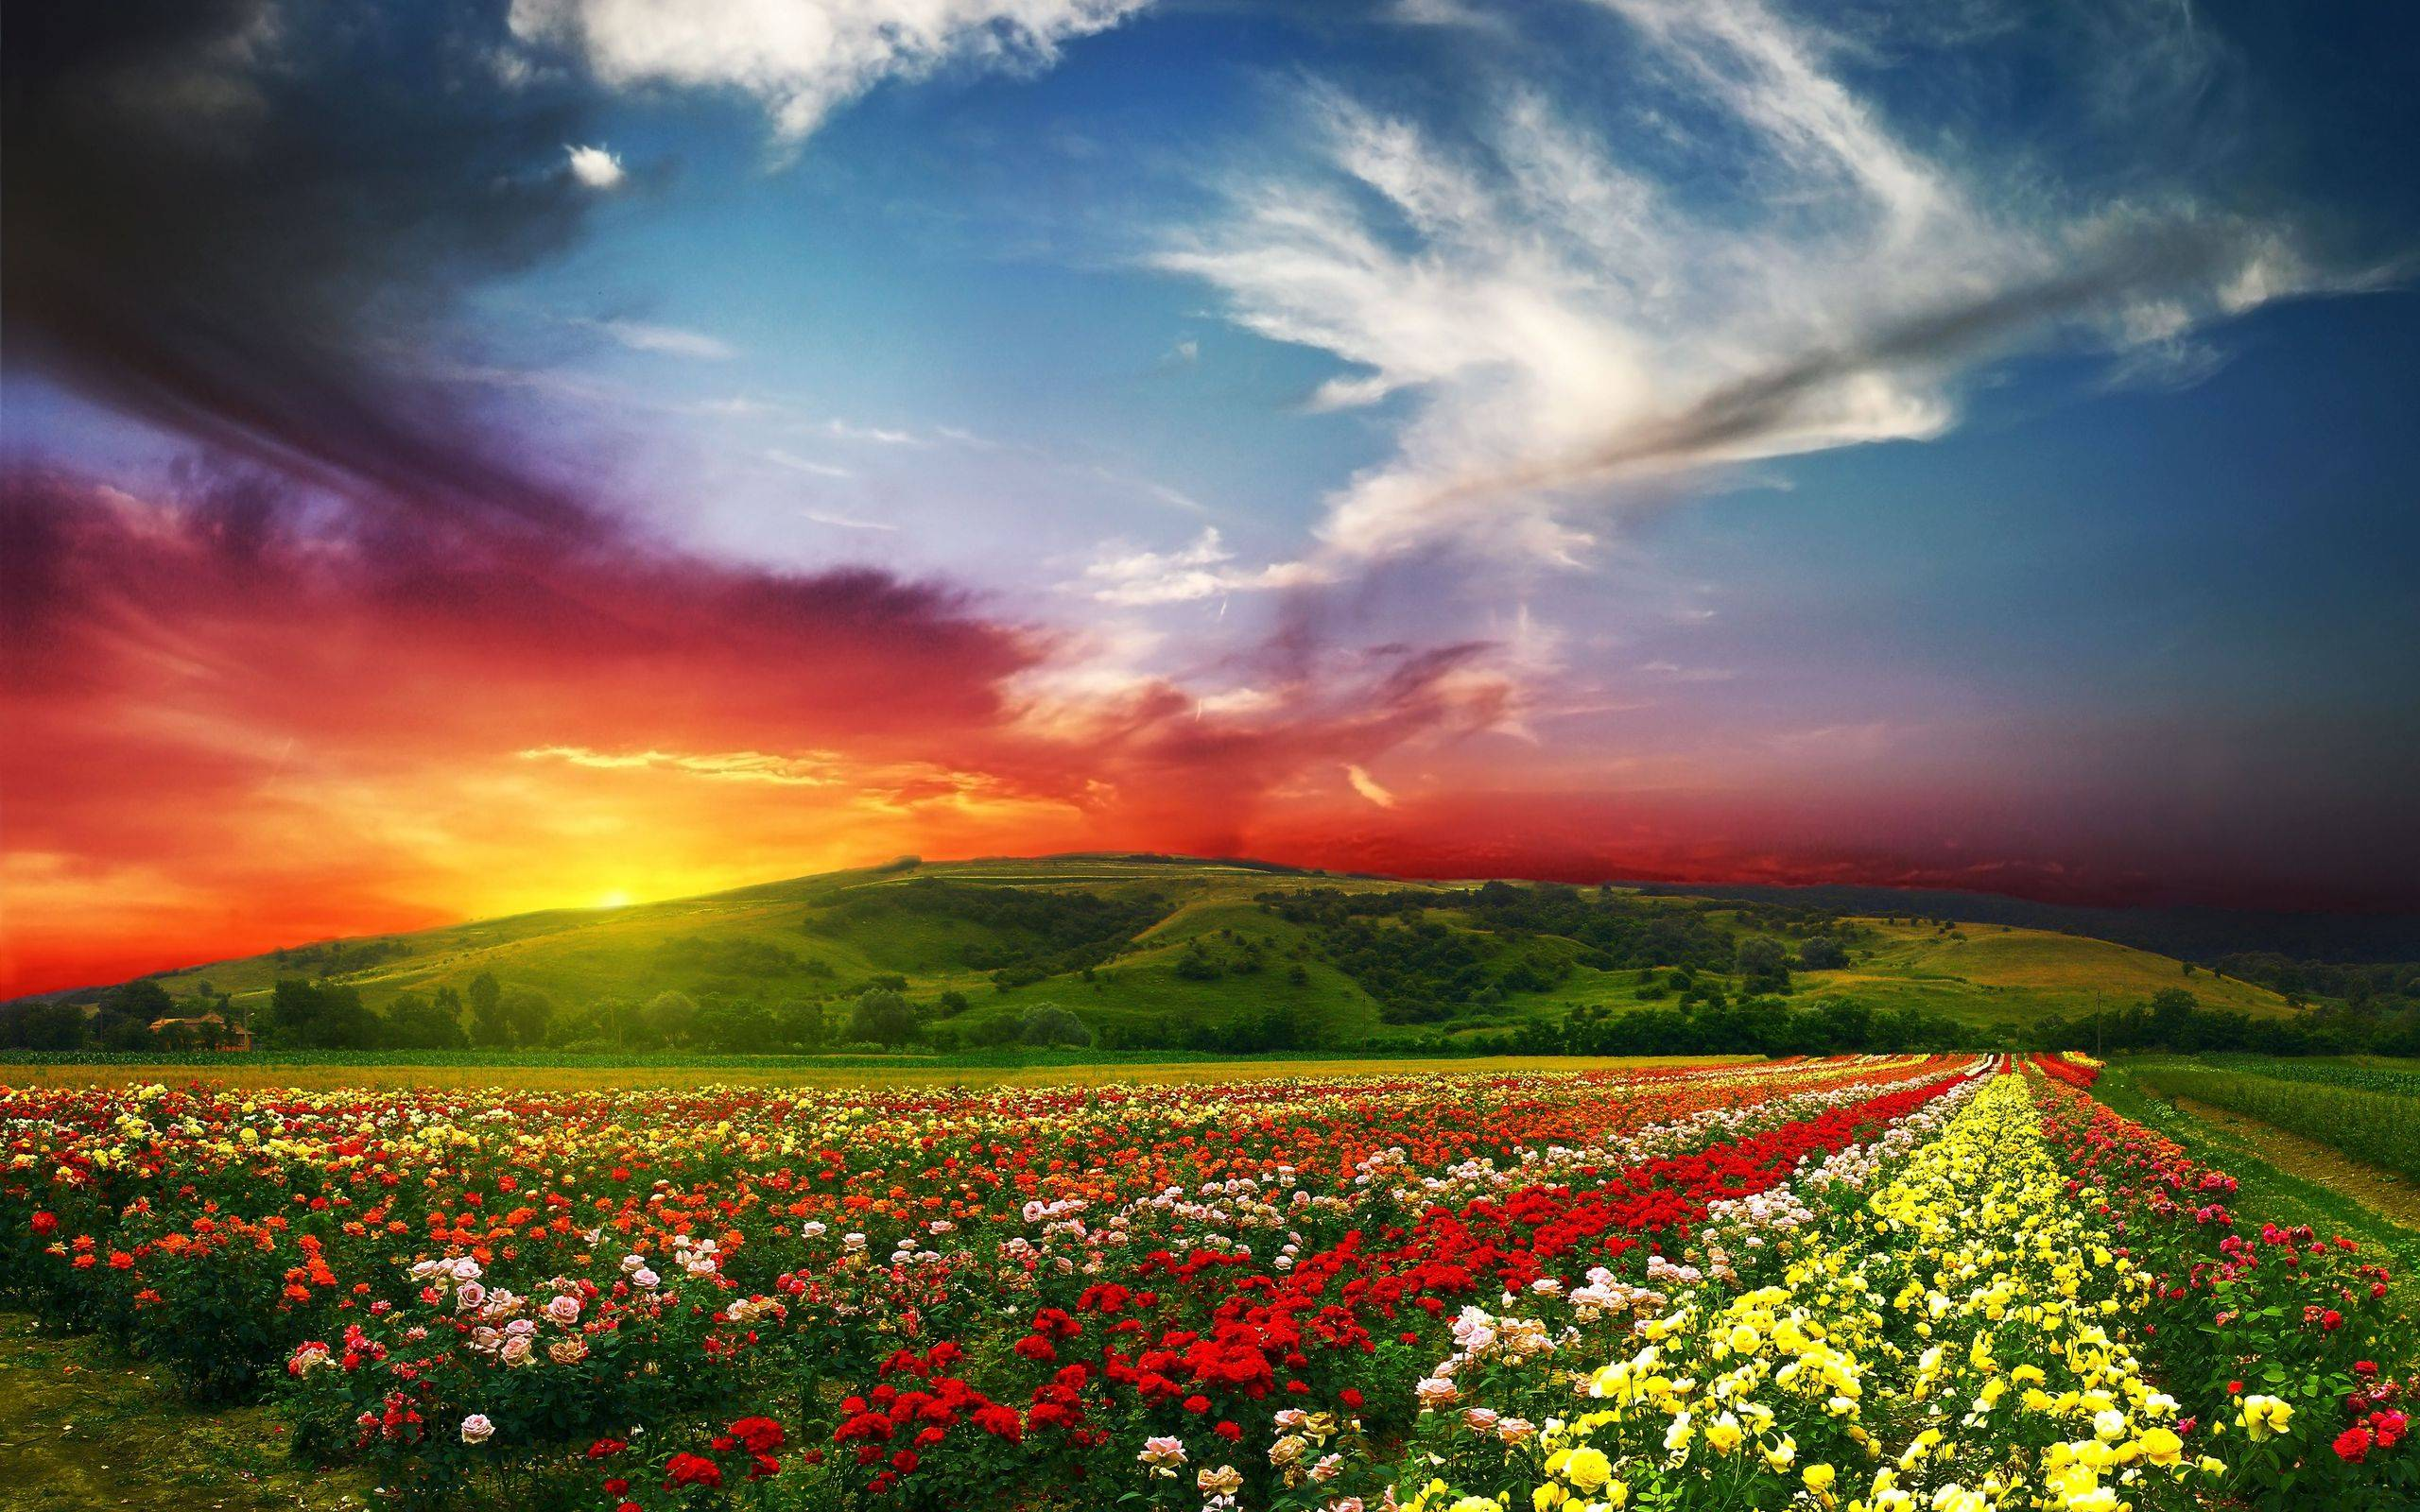 Spring Backgrounds   Wallpaper High Definition High Quality 2560x1600